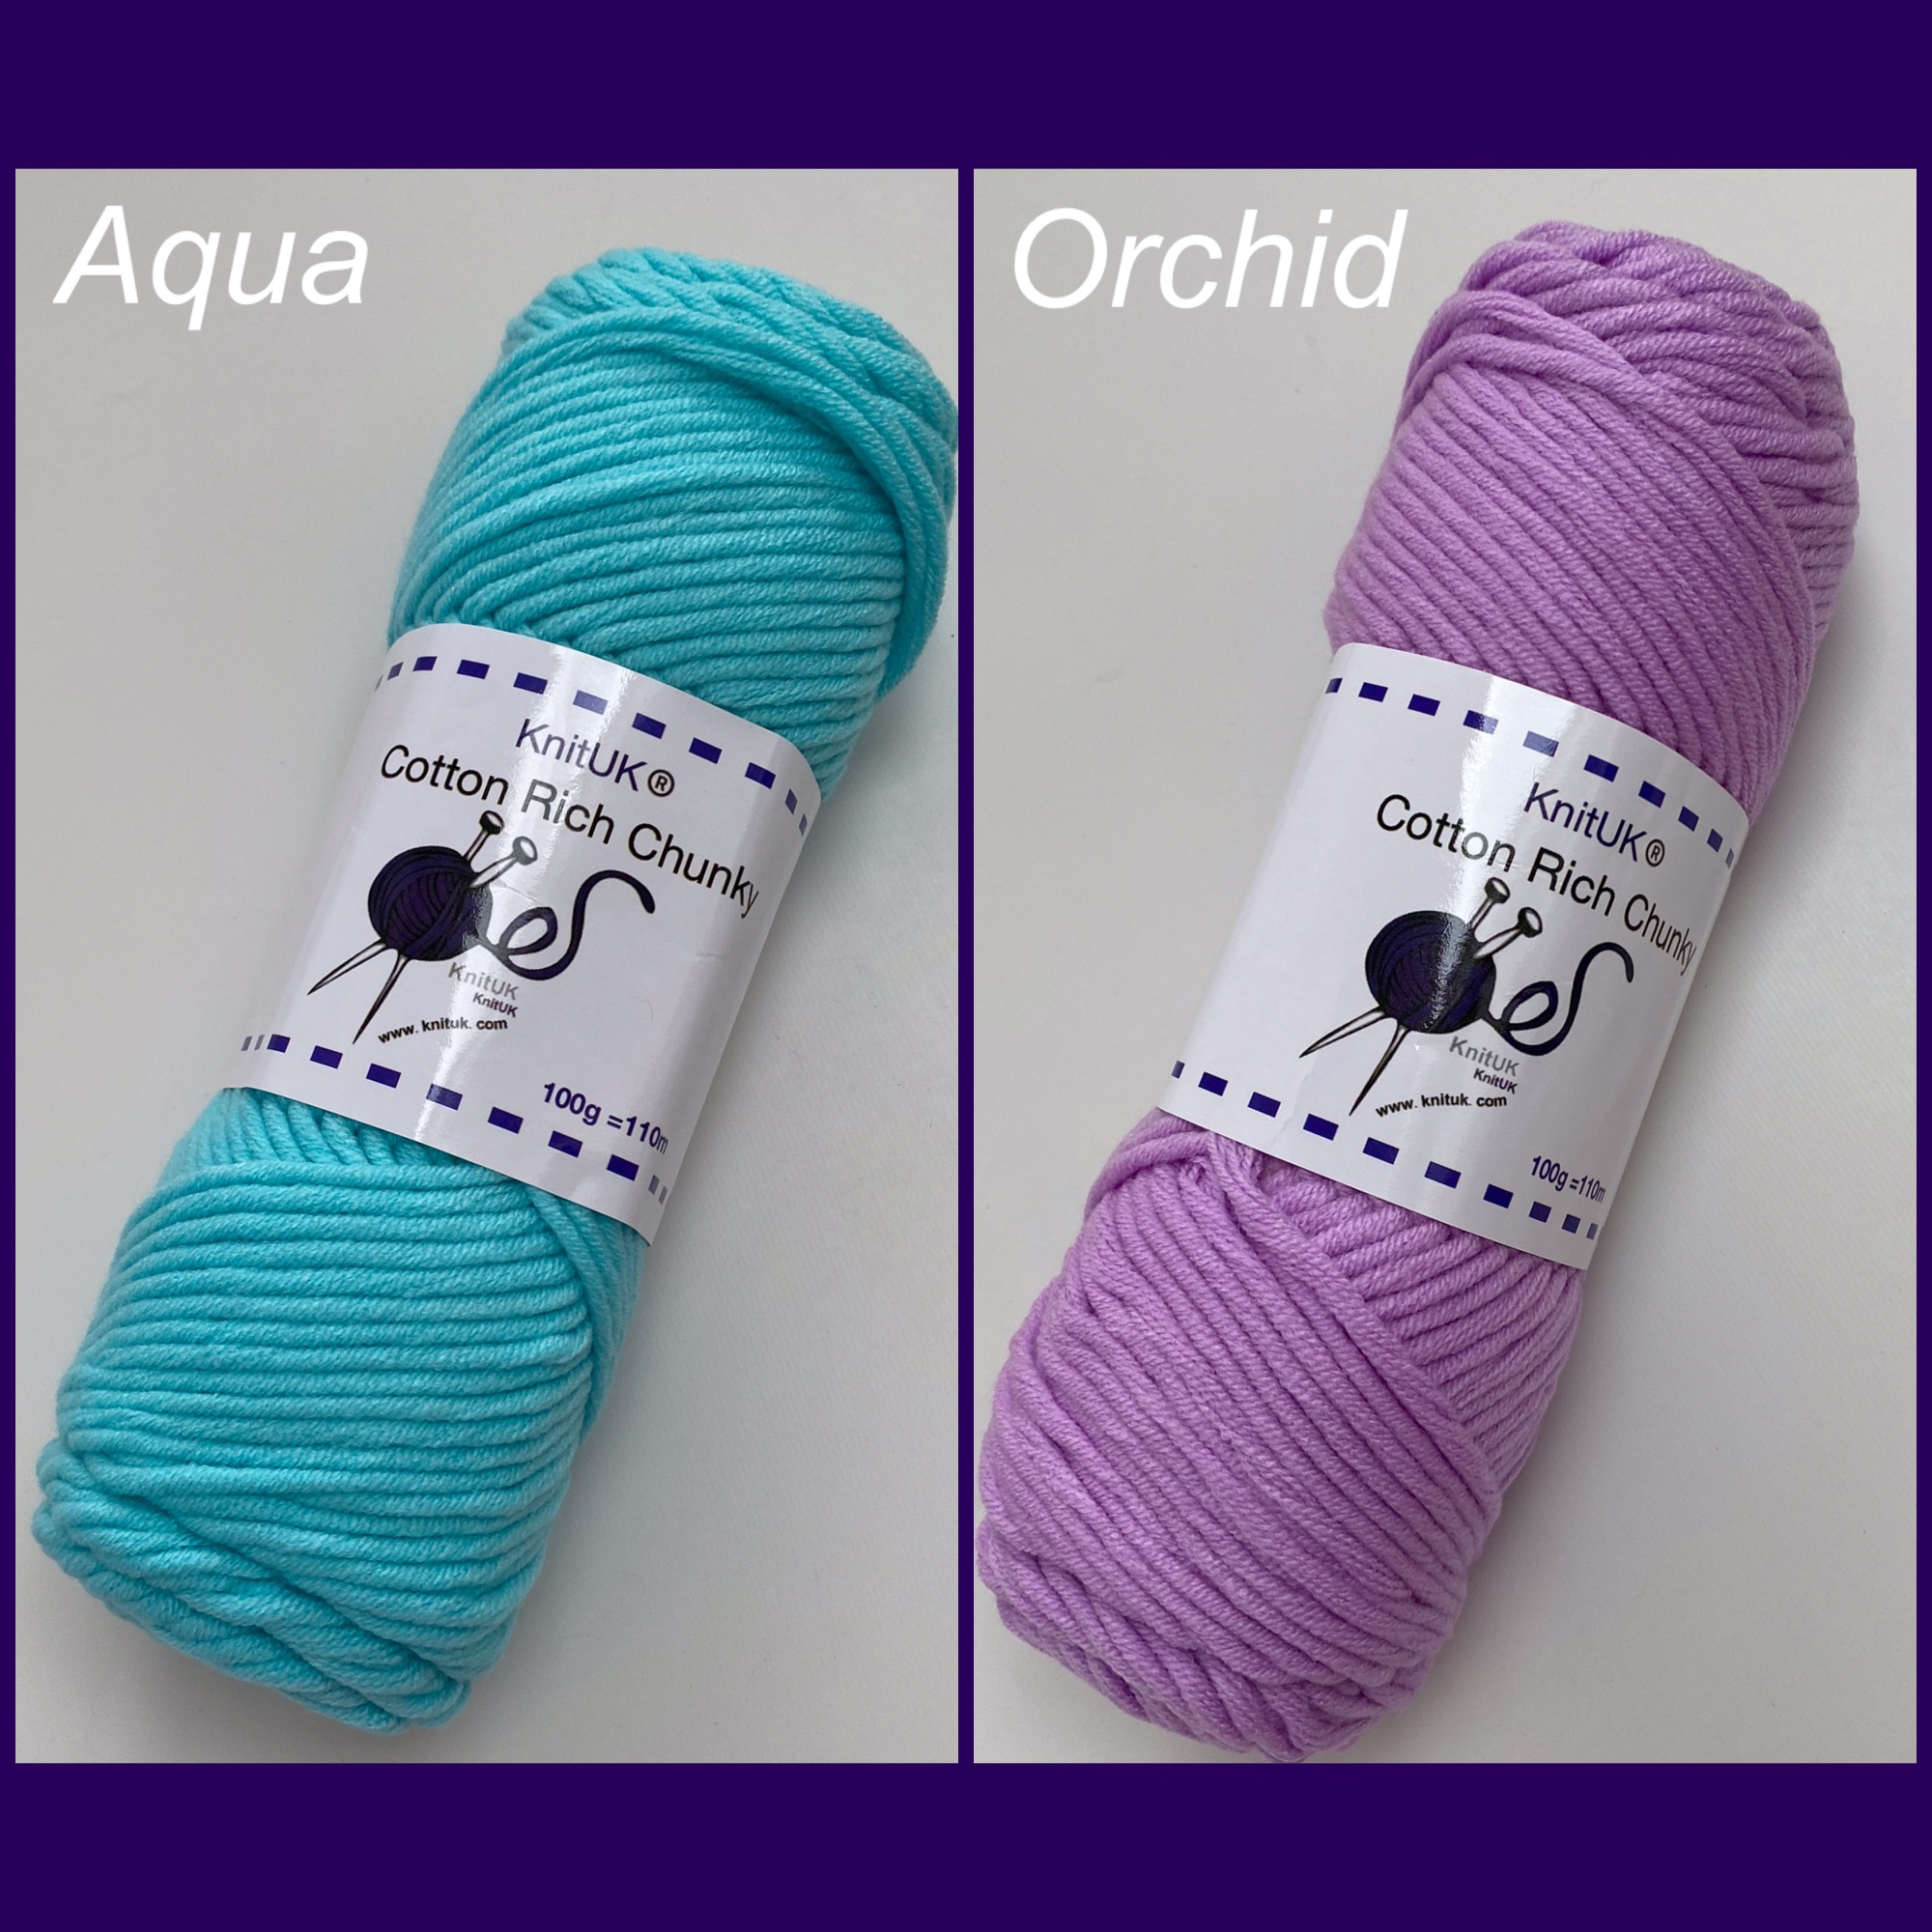 Knituk cotton rich chunky yarn aqua orchid colour long balls knitting loom